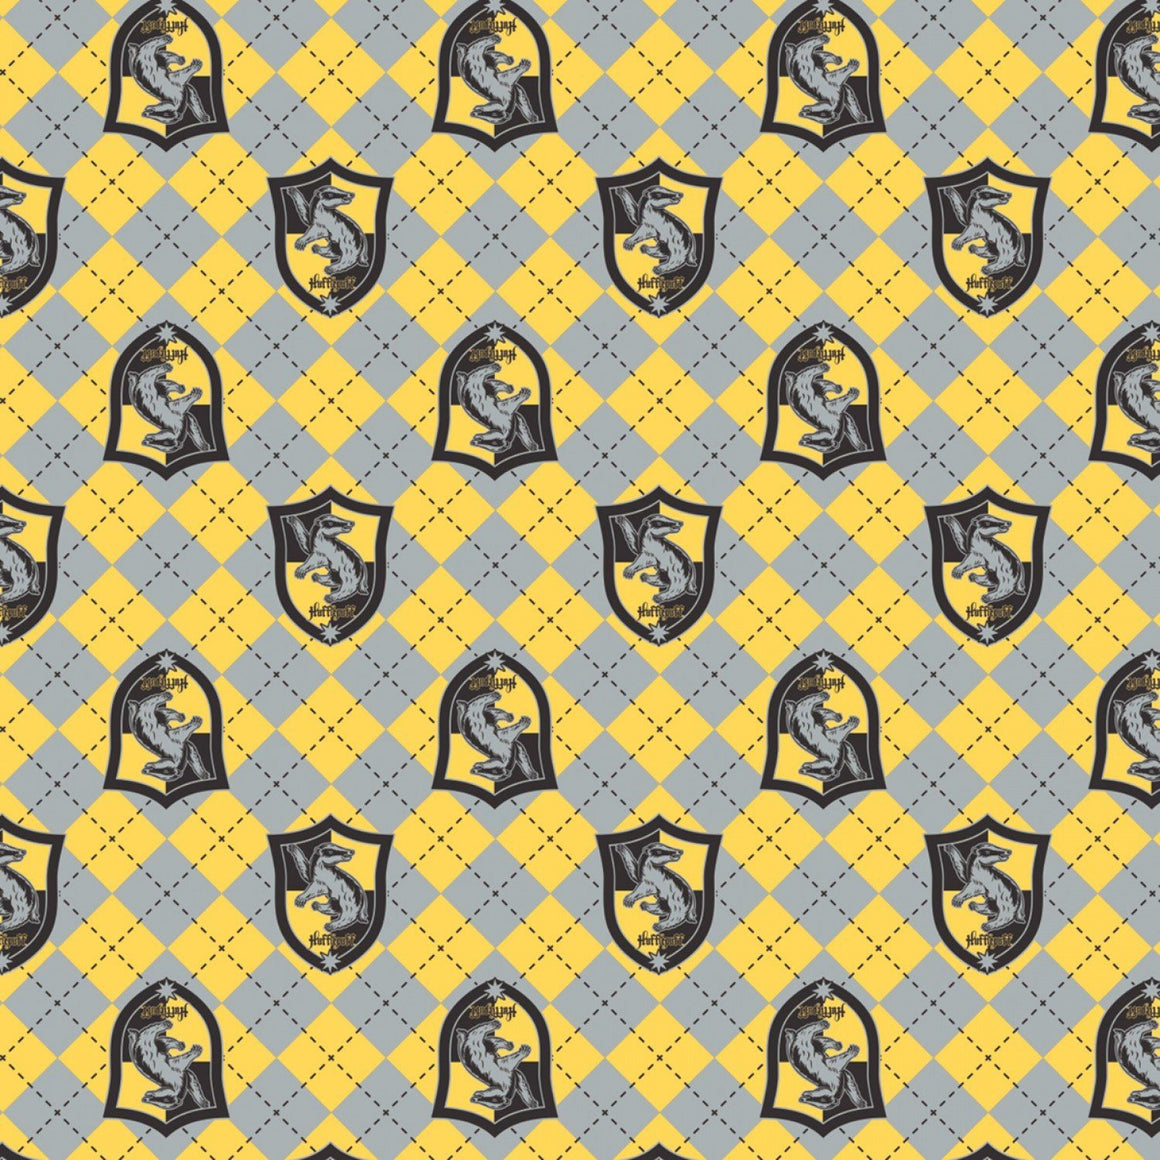 Yellow Grey and Black Hufflepuff Crest Harry Potter Argyle Flannel, 1 Yard - Raspberry Creek Fabrics